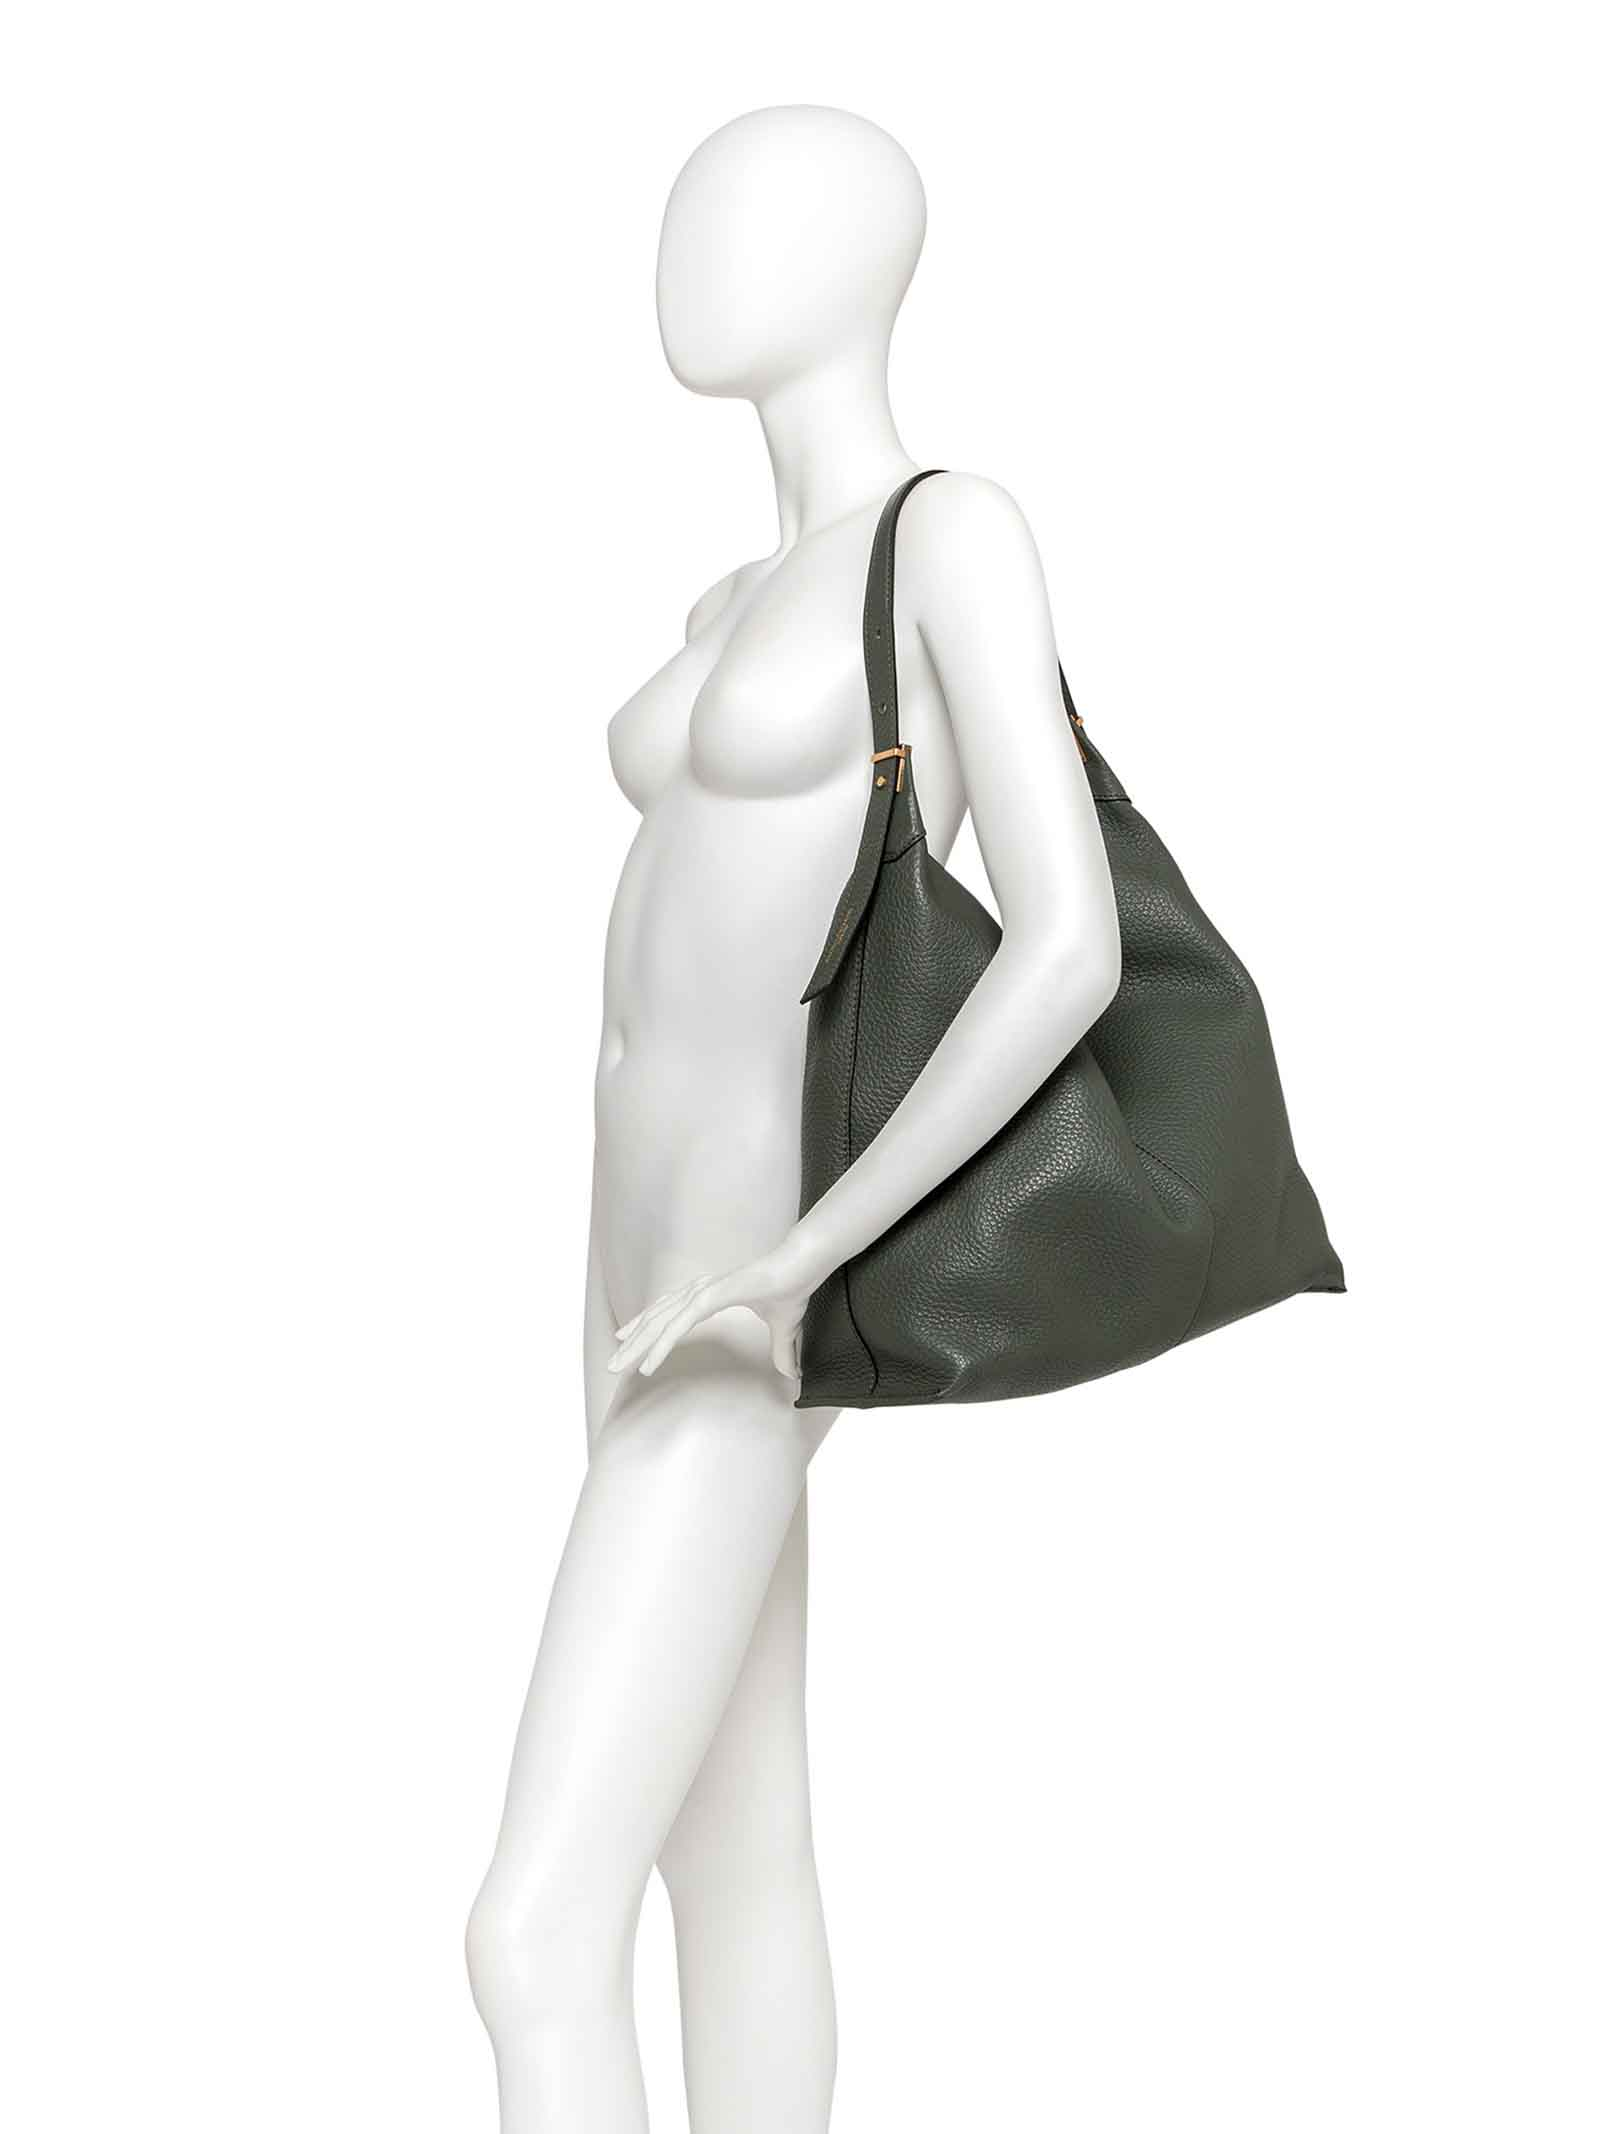 Women's Shoulder Bag Lisa in Green Leather with Adjustable Handle and Interior Clutch Gianni Chiarini   Bags and backpacks   BS891511384